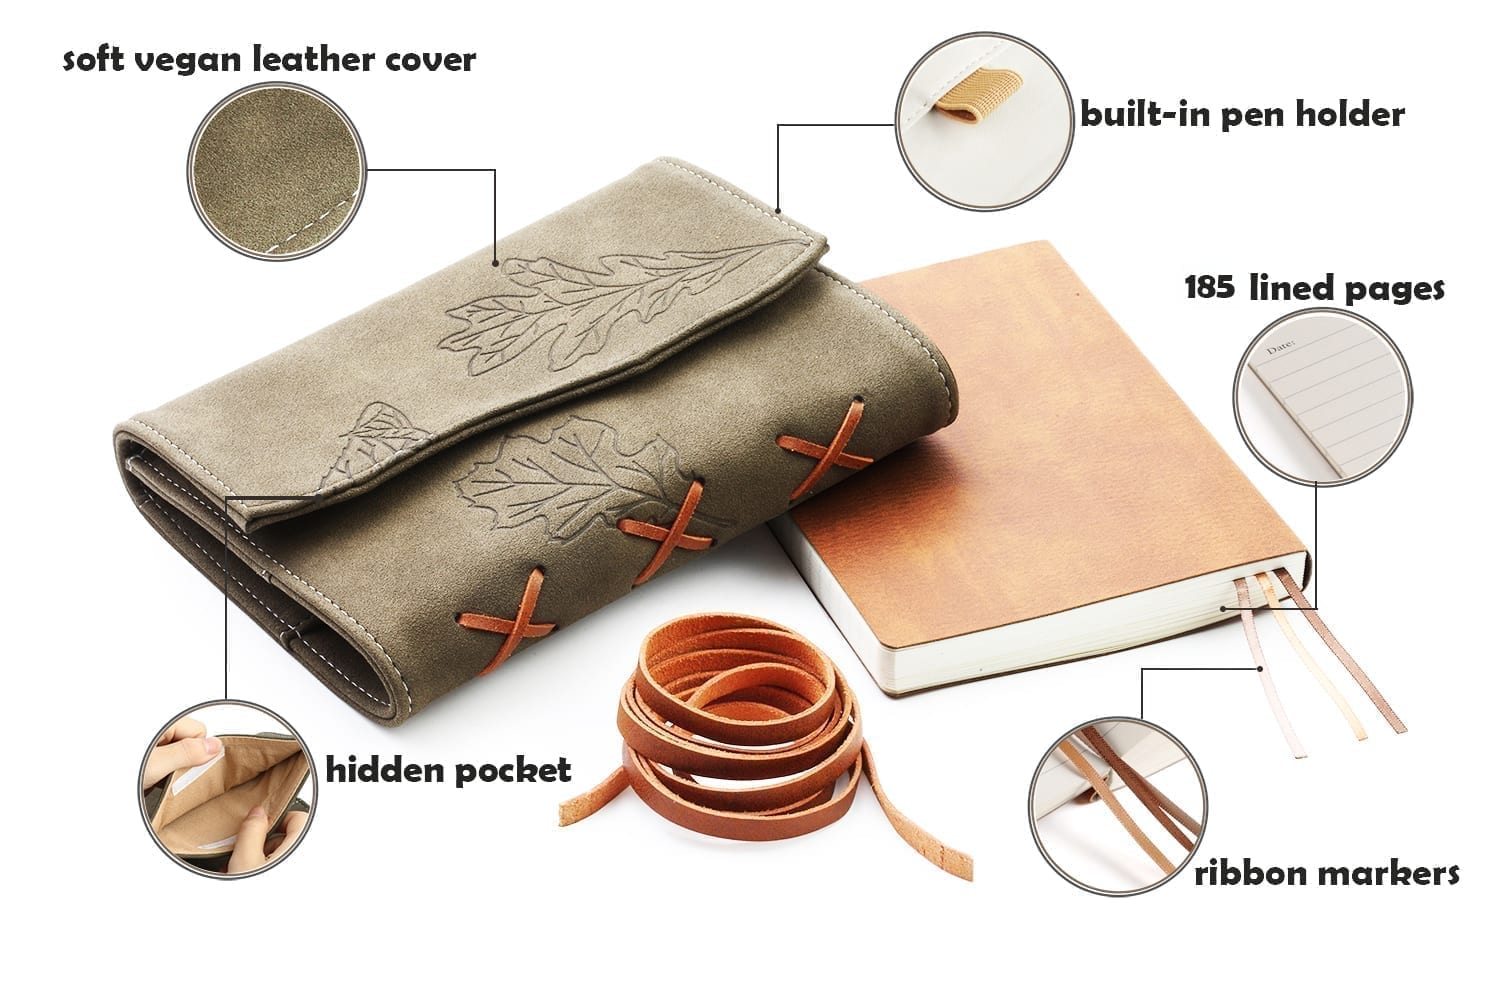 unique gifts for vegetarians-vegan leather writing journal with oak leaves engraved